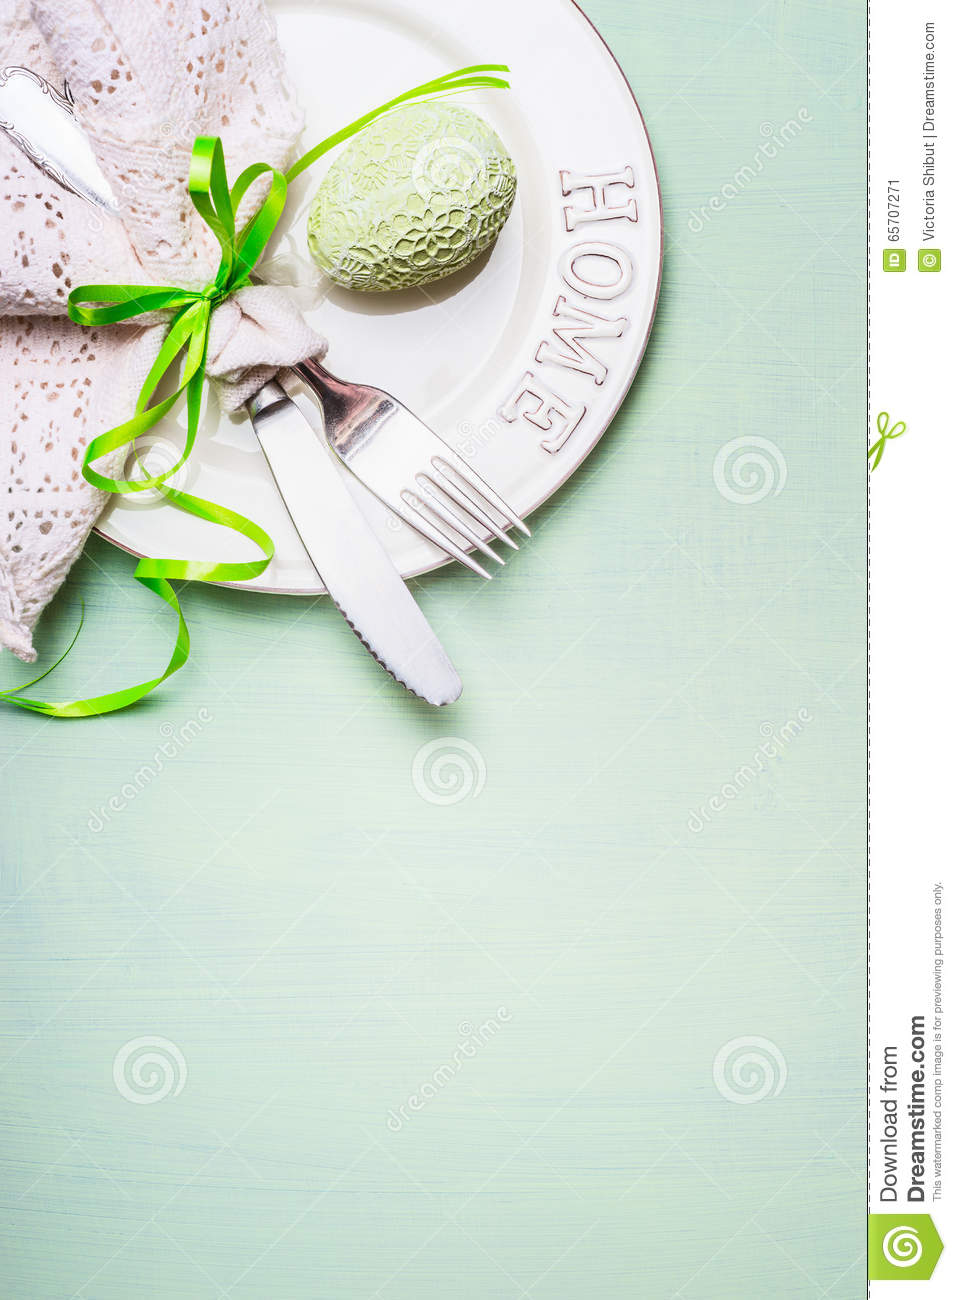 Easter table place setting with plate, cutlery decorated with lacy napkin and egg on light green background, top view.